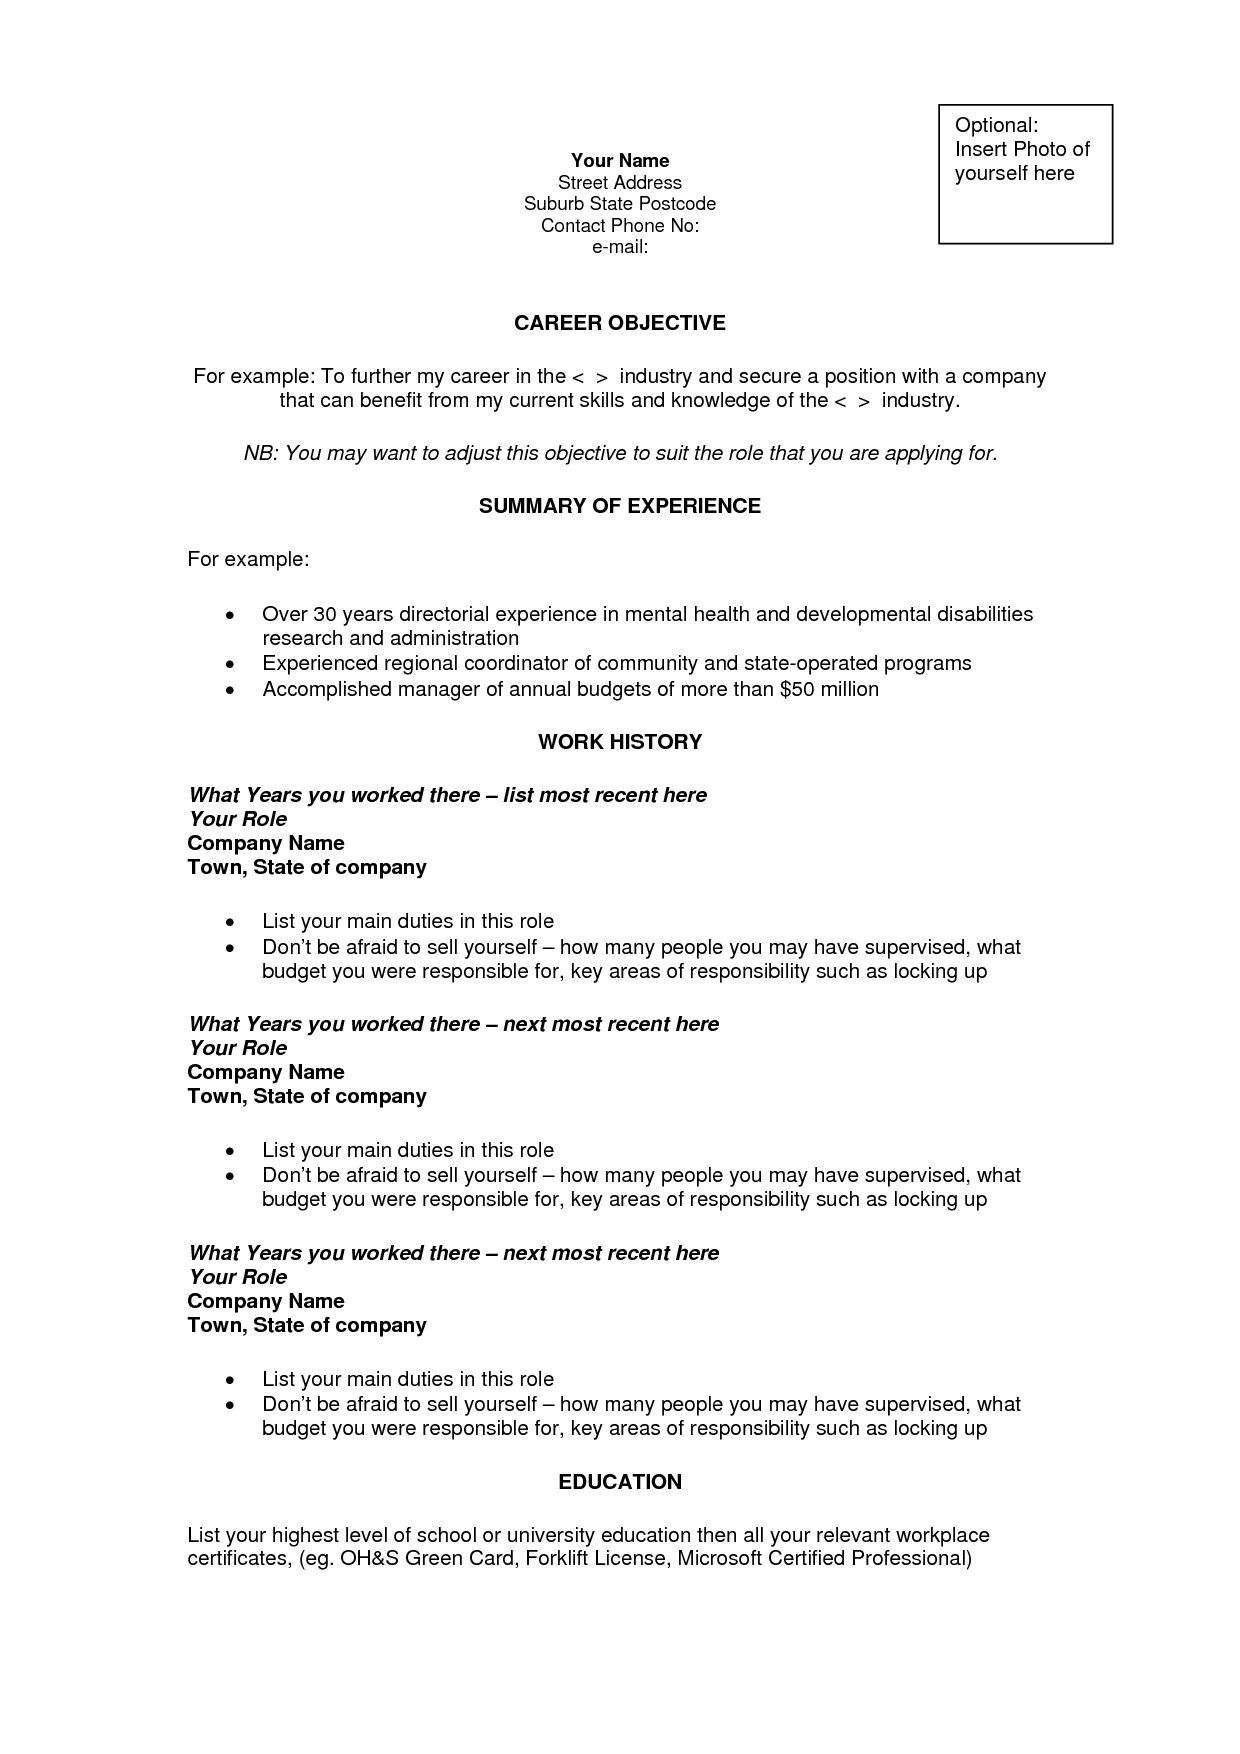 Samples Of Resume Summary How To Write Career Objective With Sample